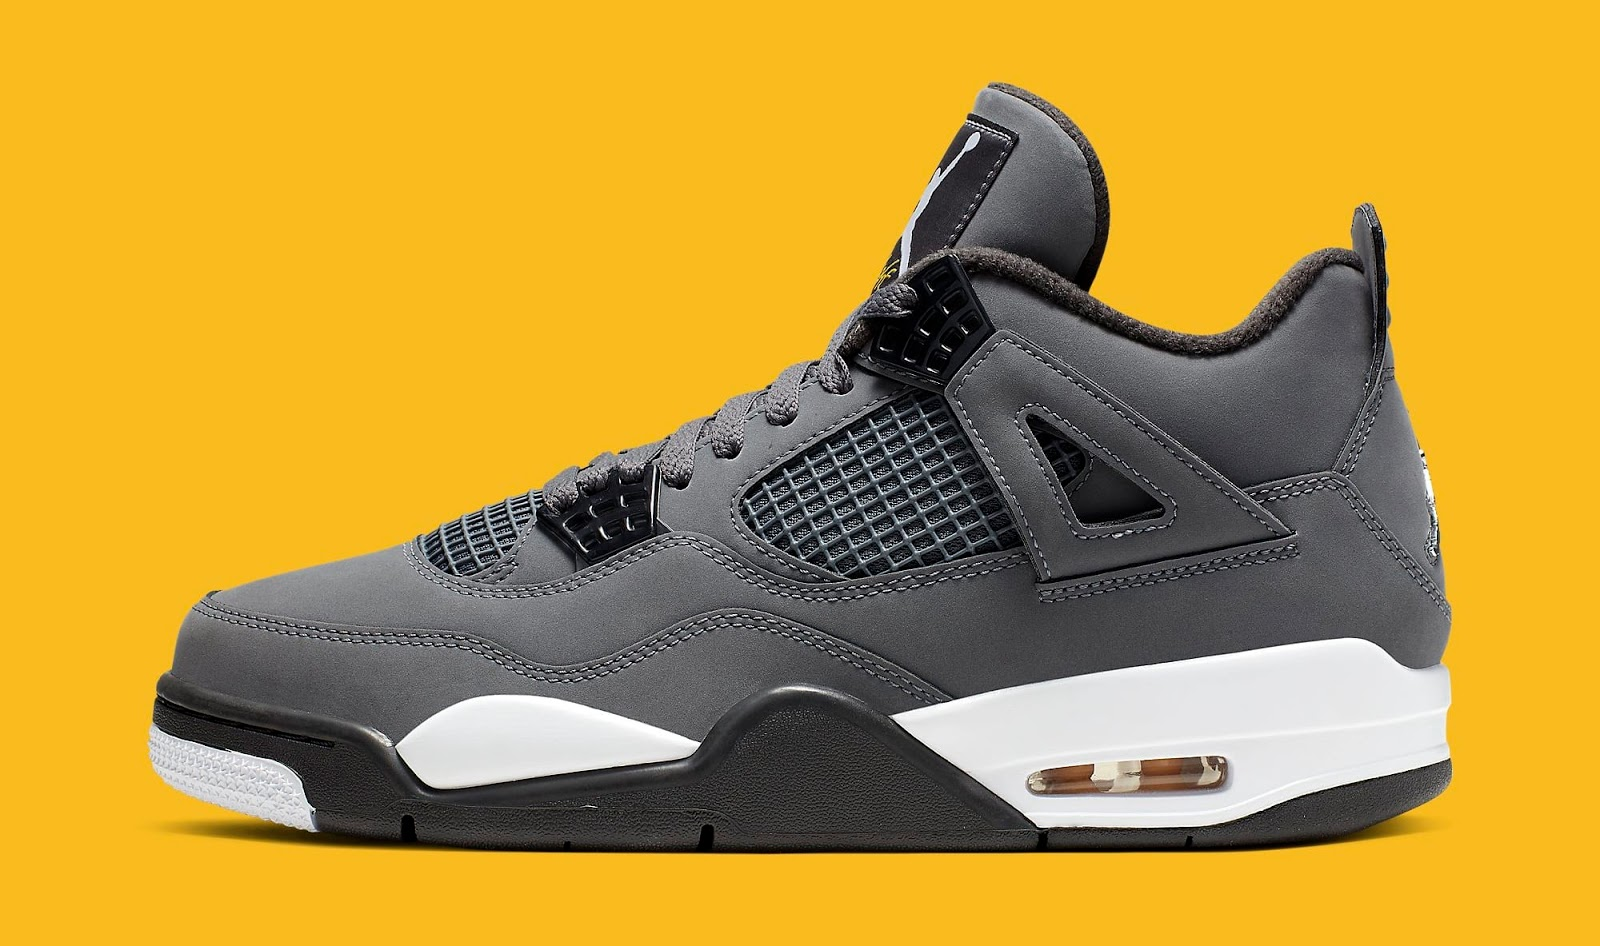 detailed look eb9f6 778c9 Swag Craze: First Look: Nike Air Jordan 4 - 'Cool Grey'